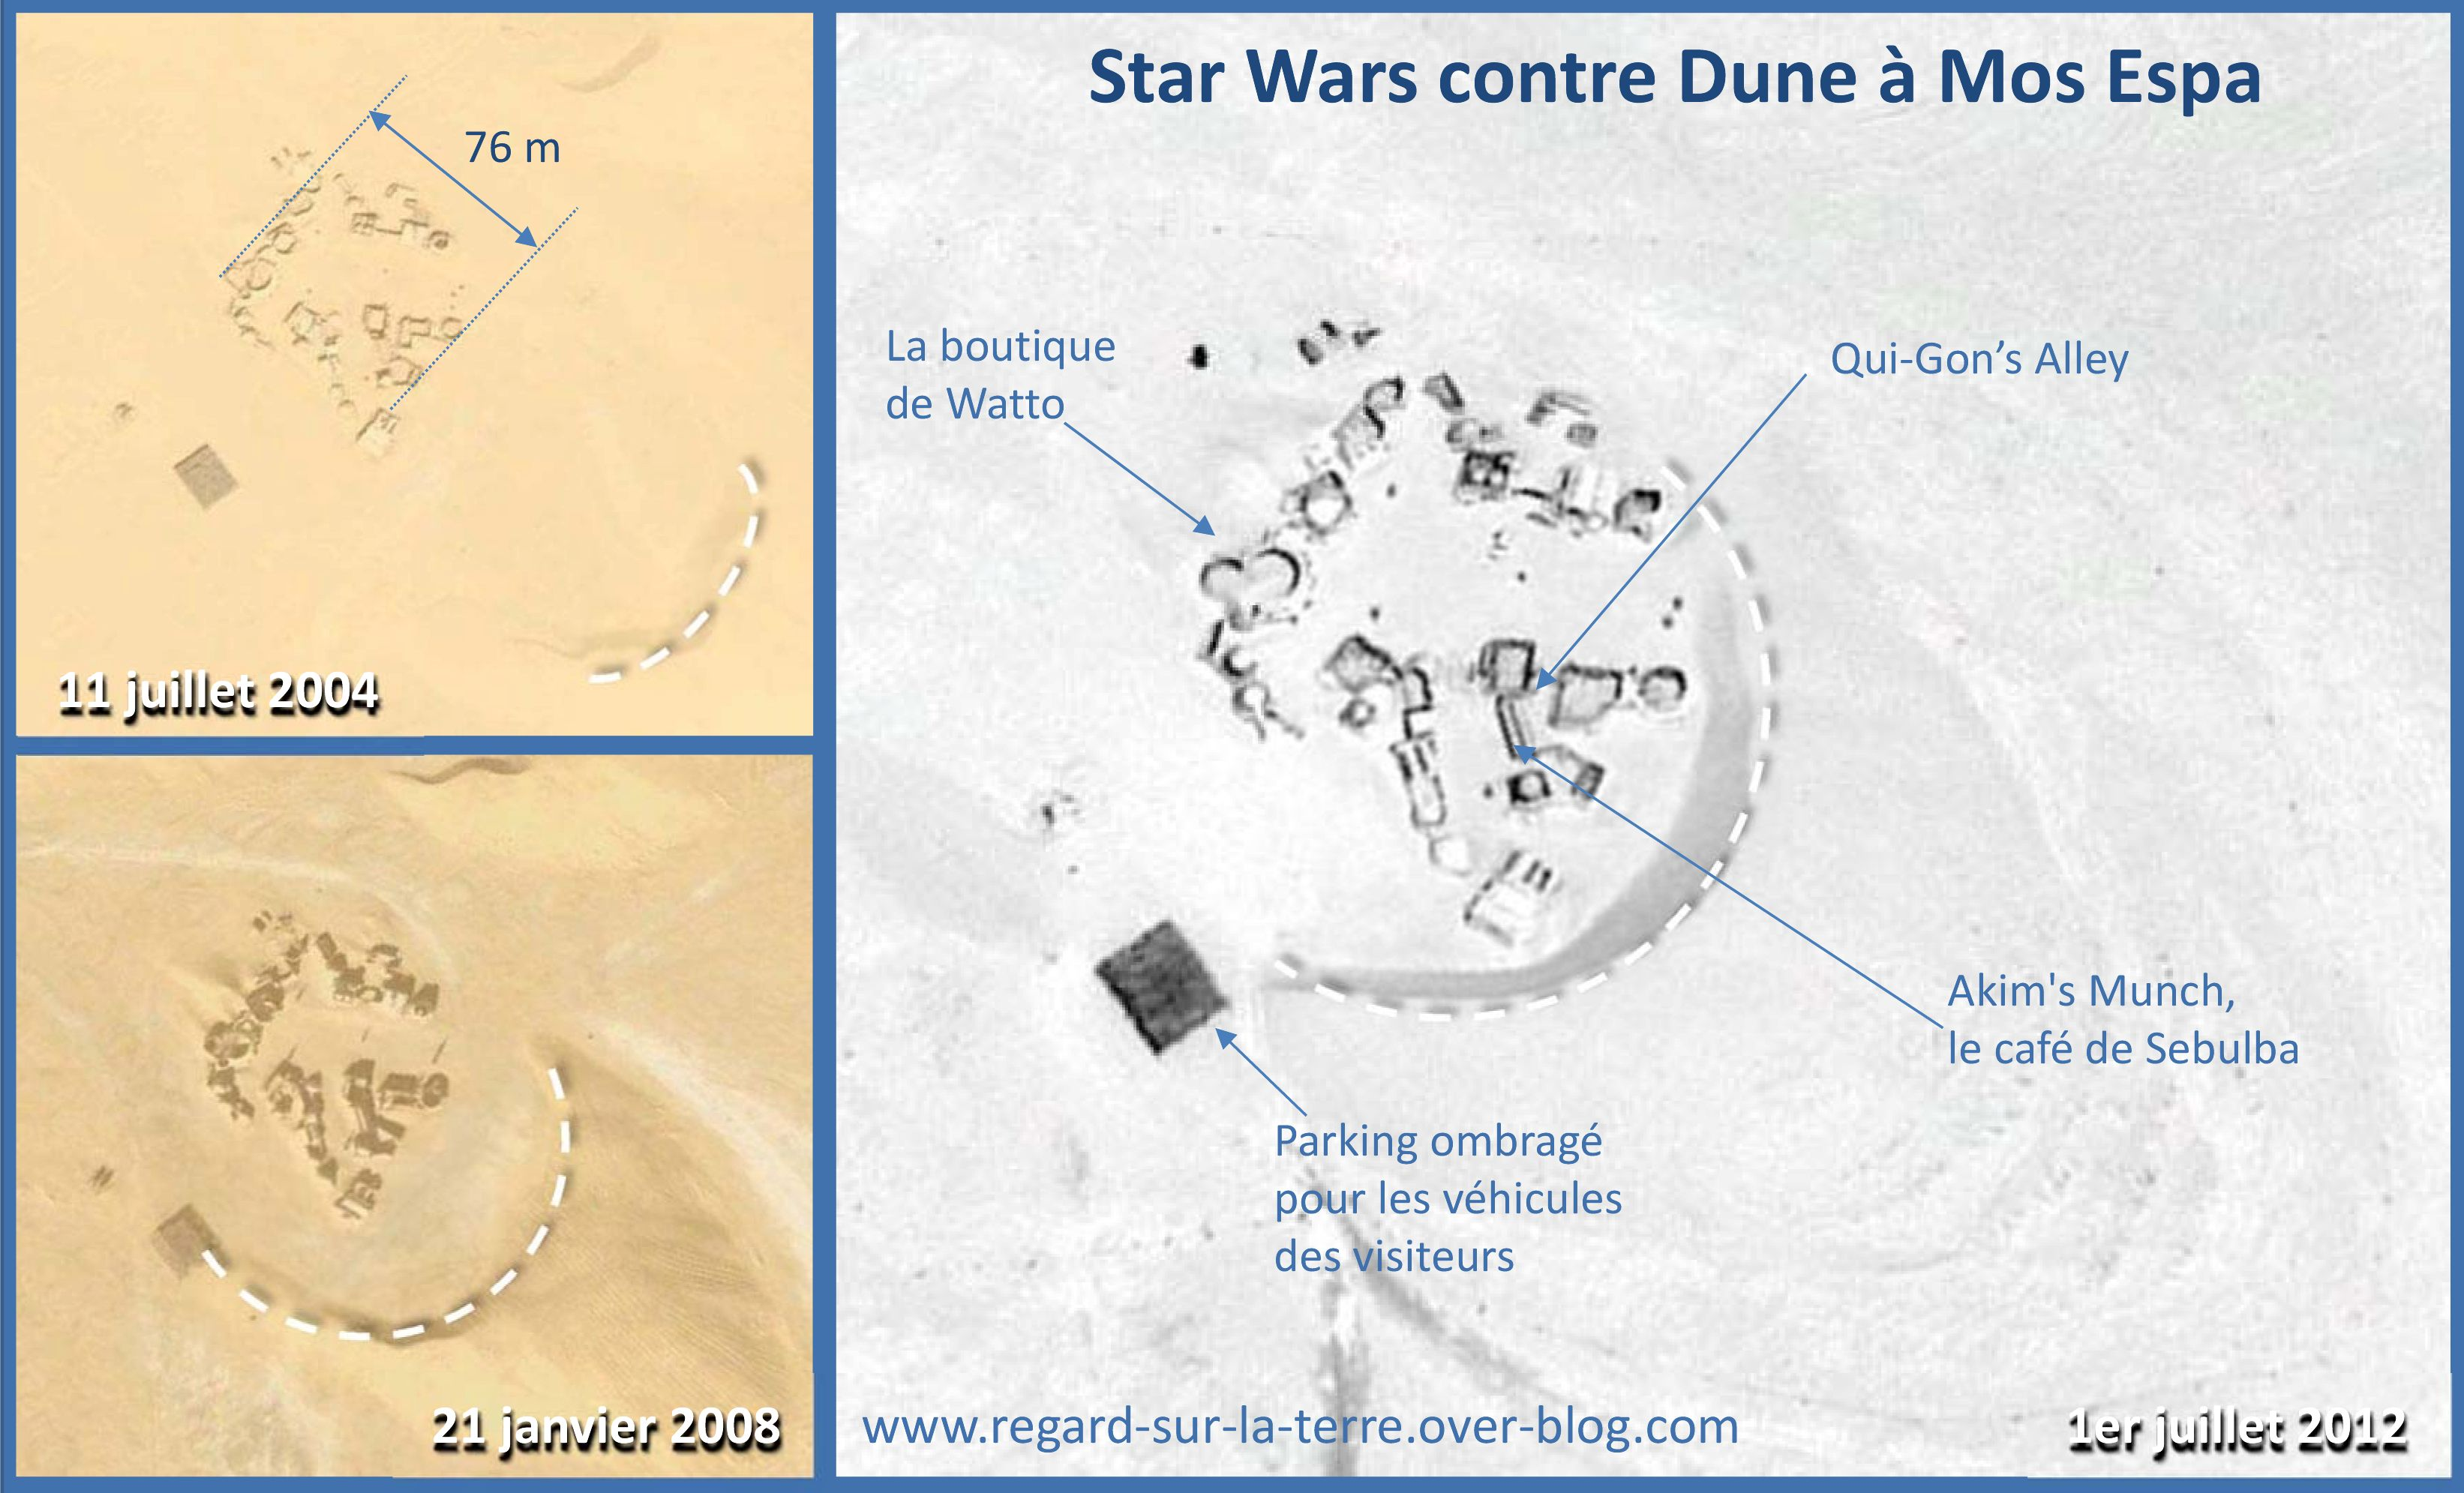 Tunisie - Ong Jmal - Mos Espa - Progression de la dune - Record drapeau - Star Wars - Dark Vador dans le sable - Google Earth